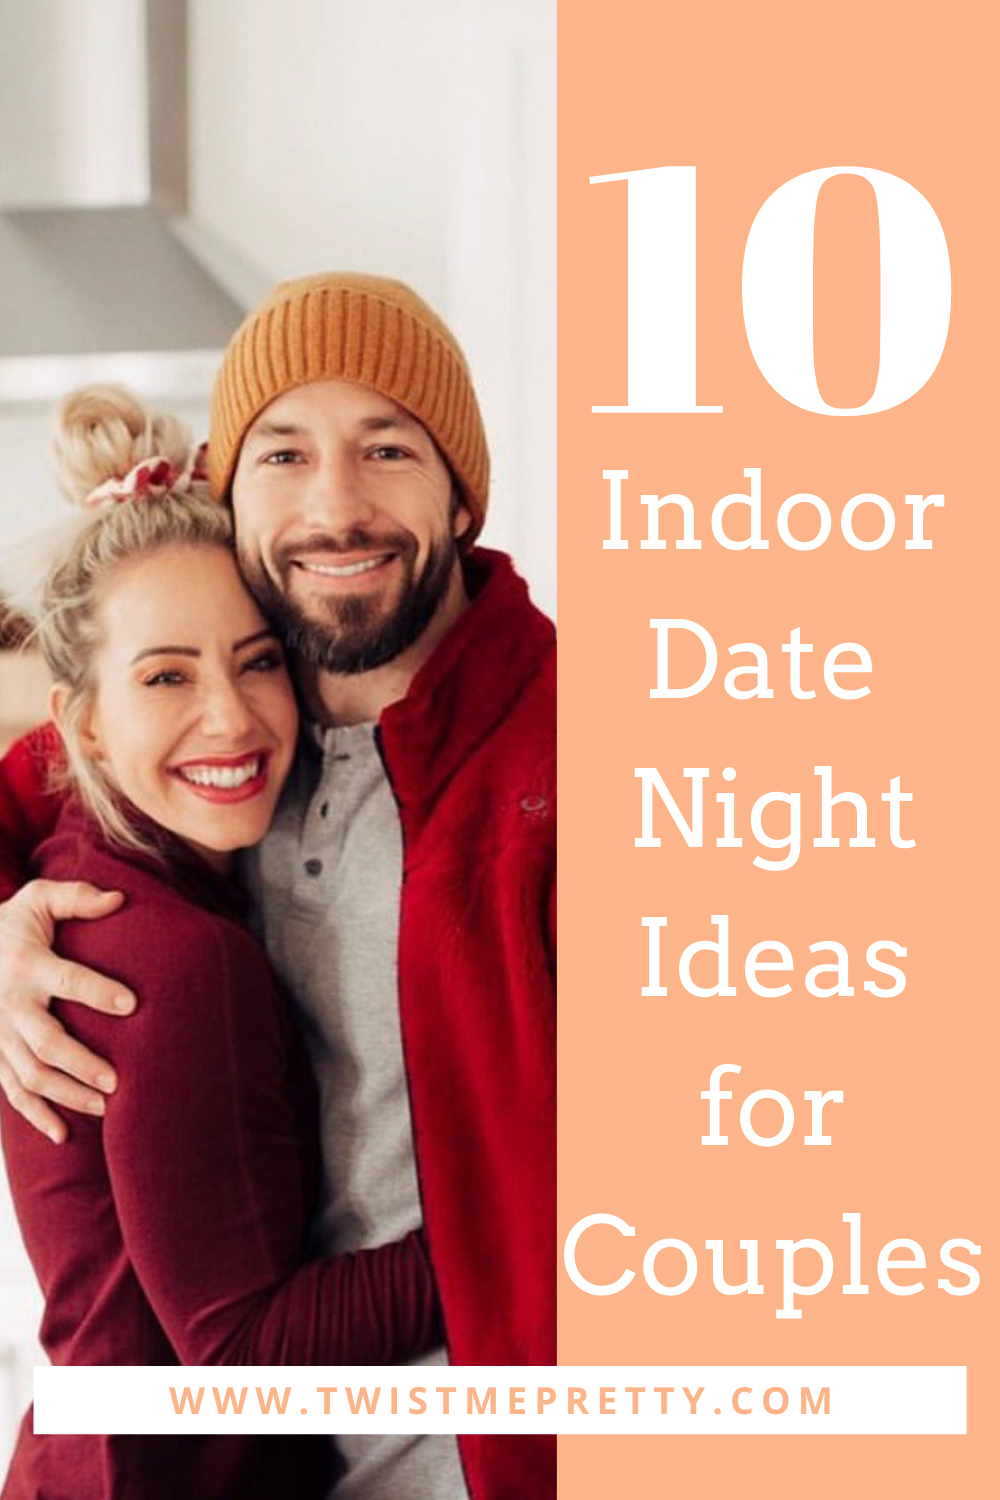 10 Indoor Date Night Ideas for Couples www.twistmepretty.com